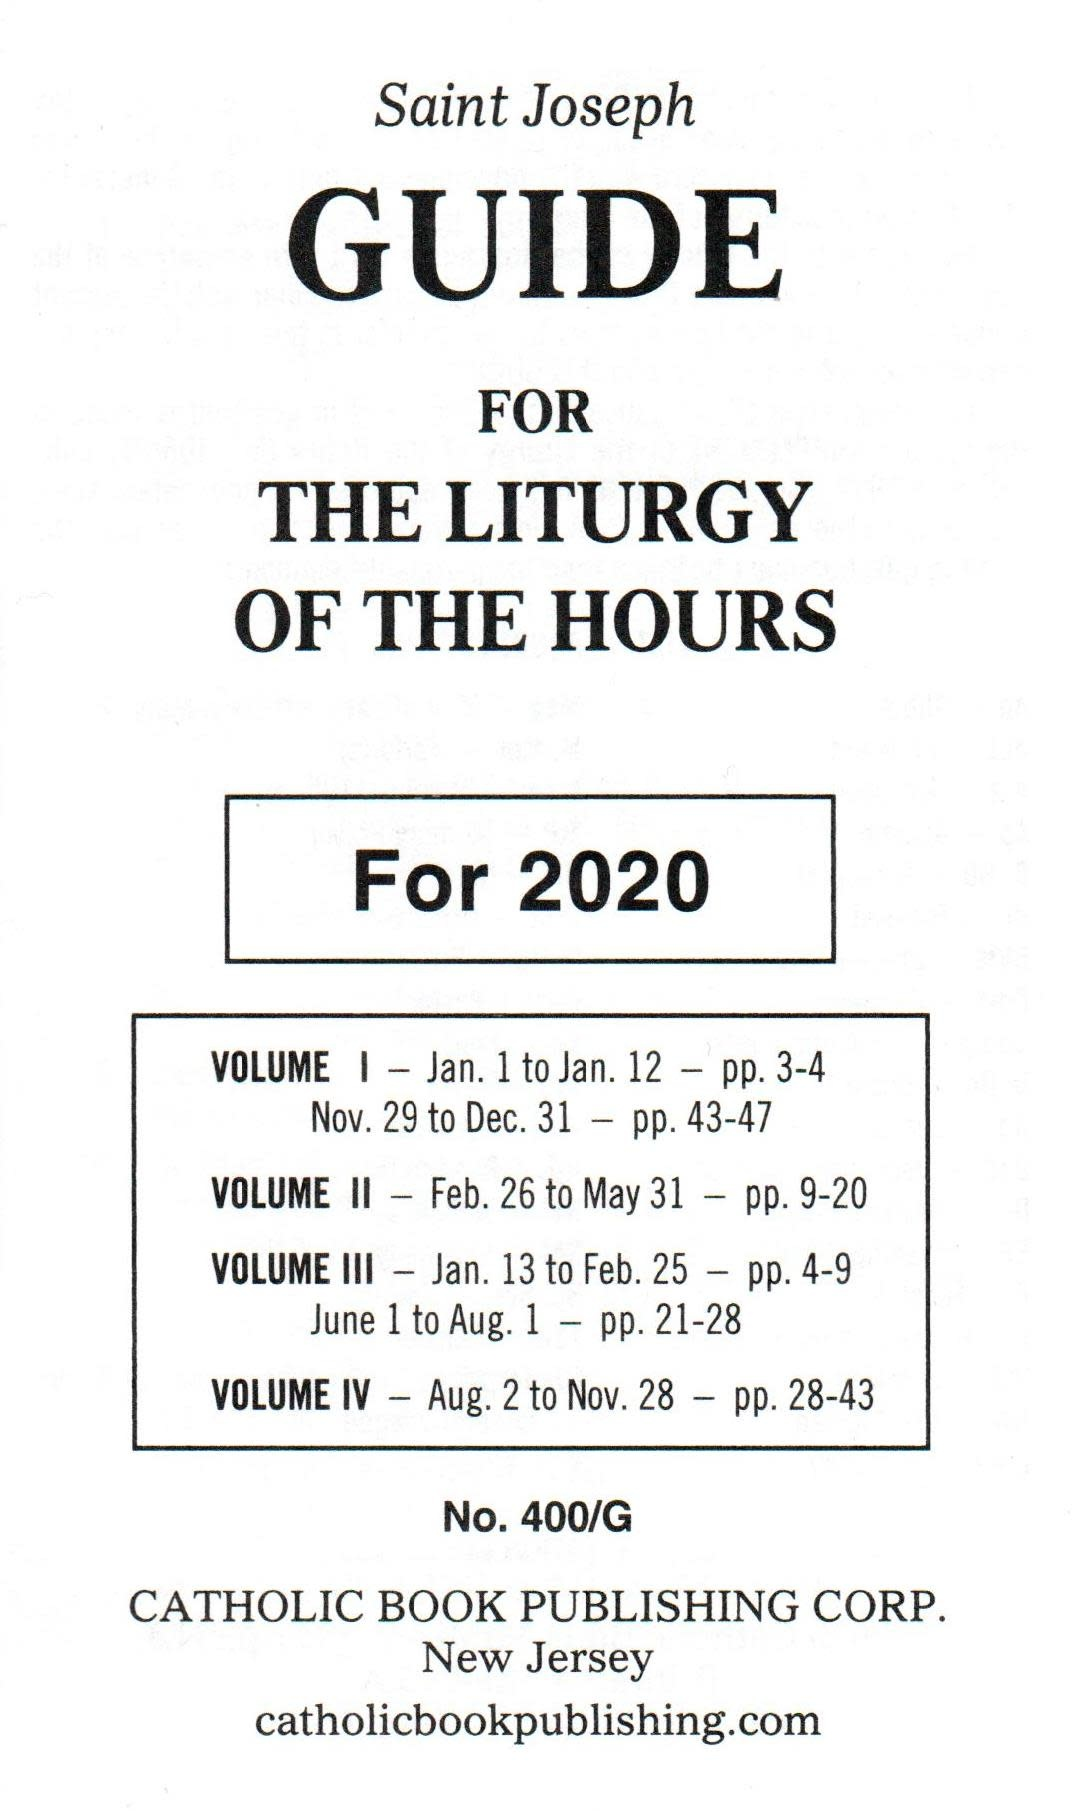 Saint Joseph Guide for The Liturgy of the Hours - 2020